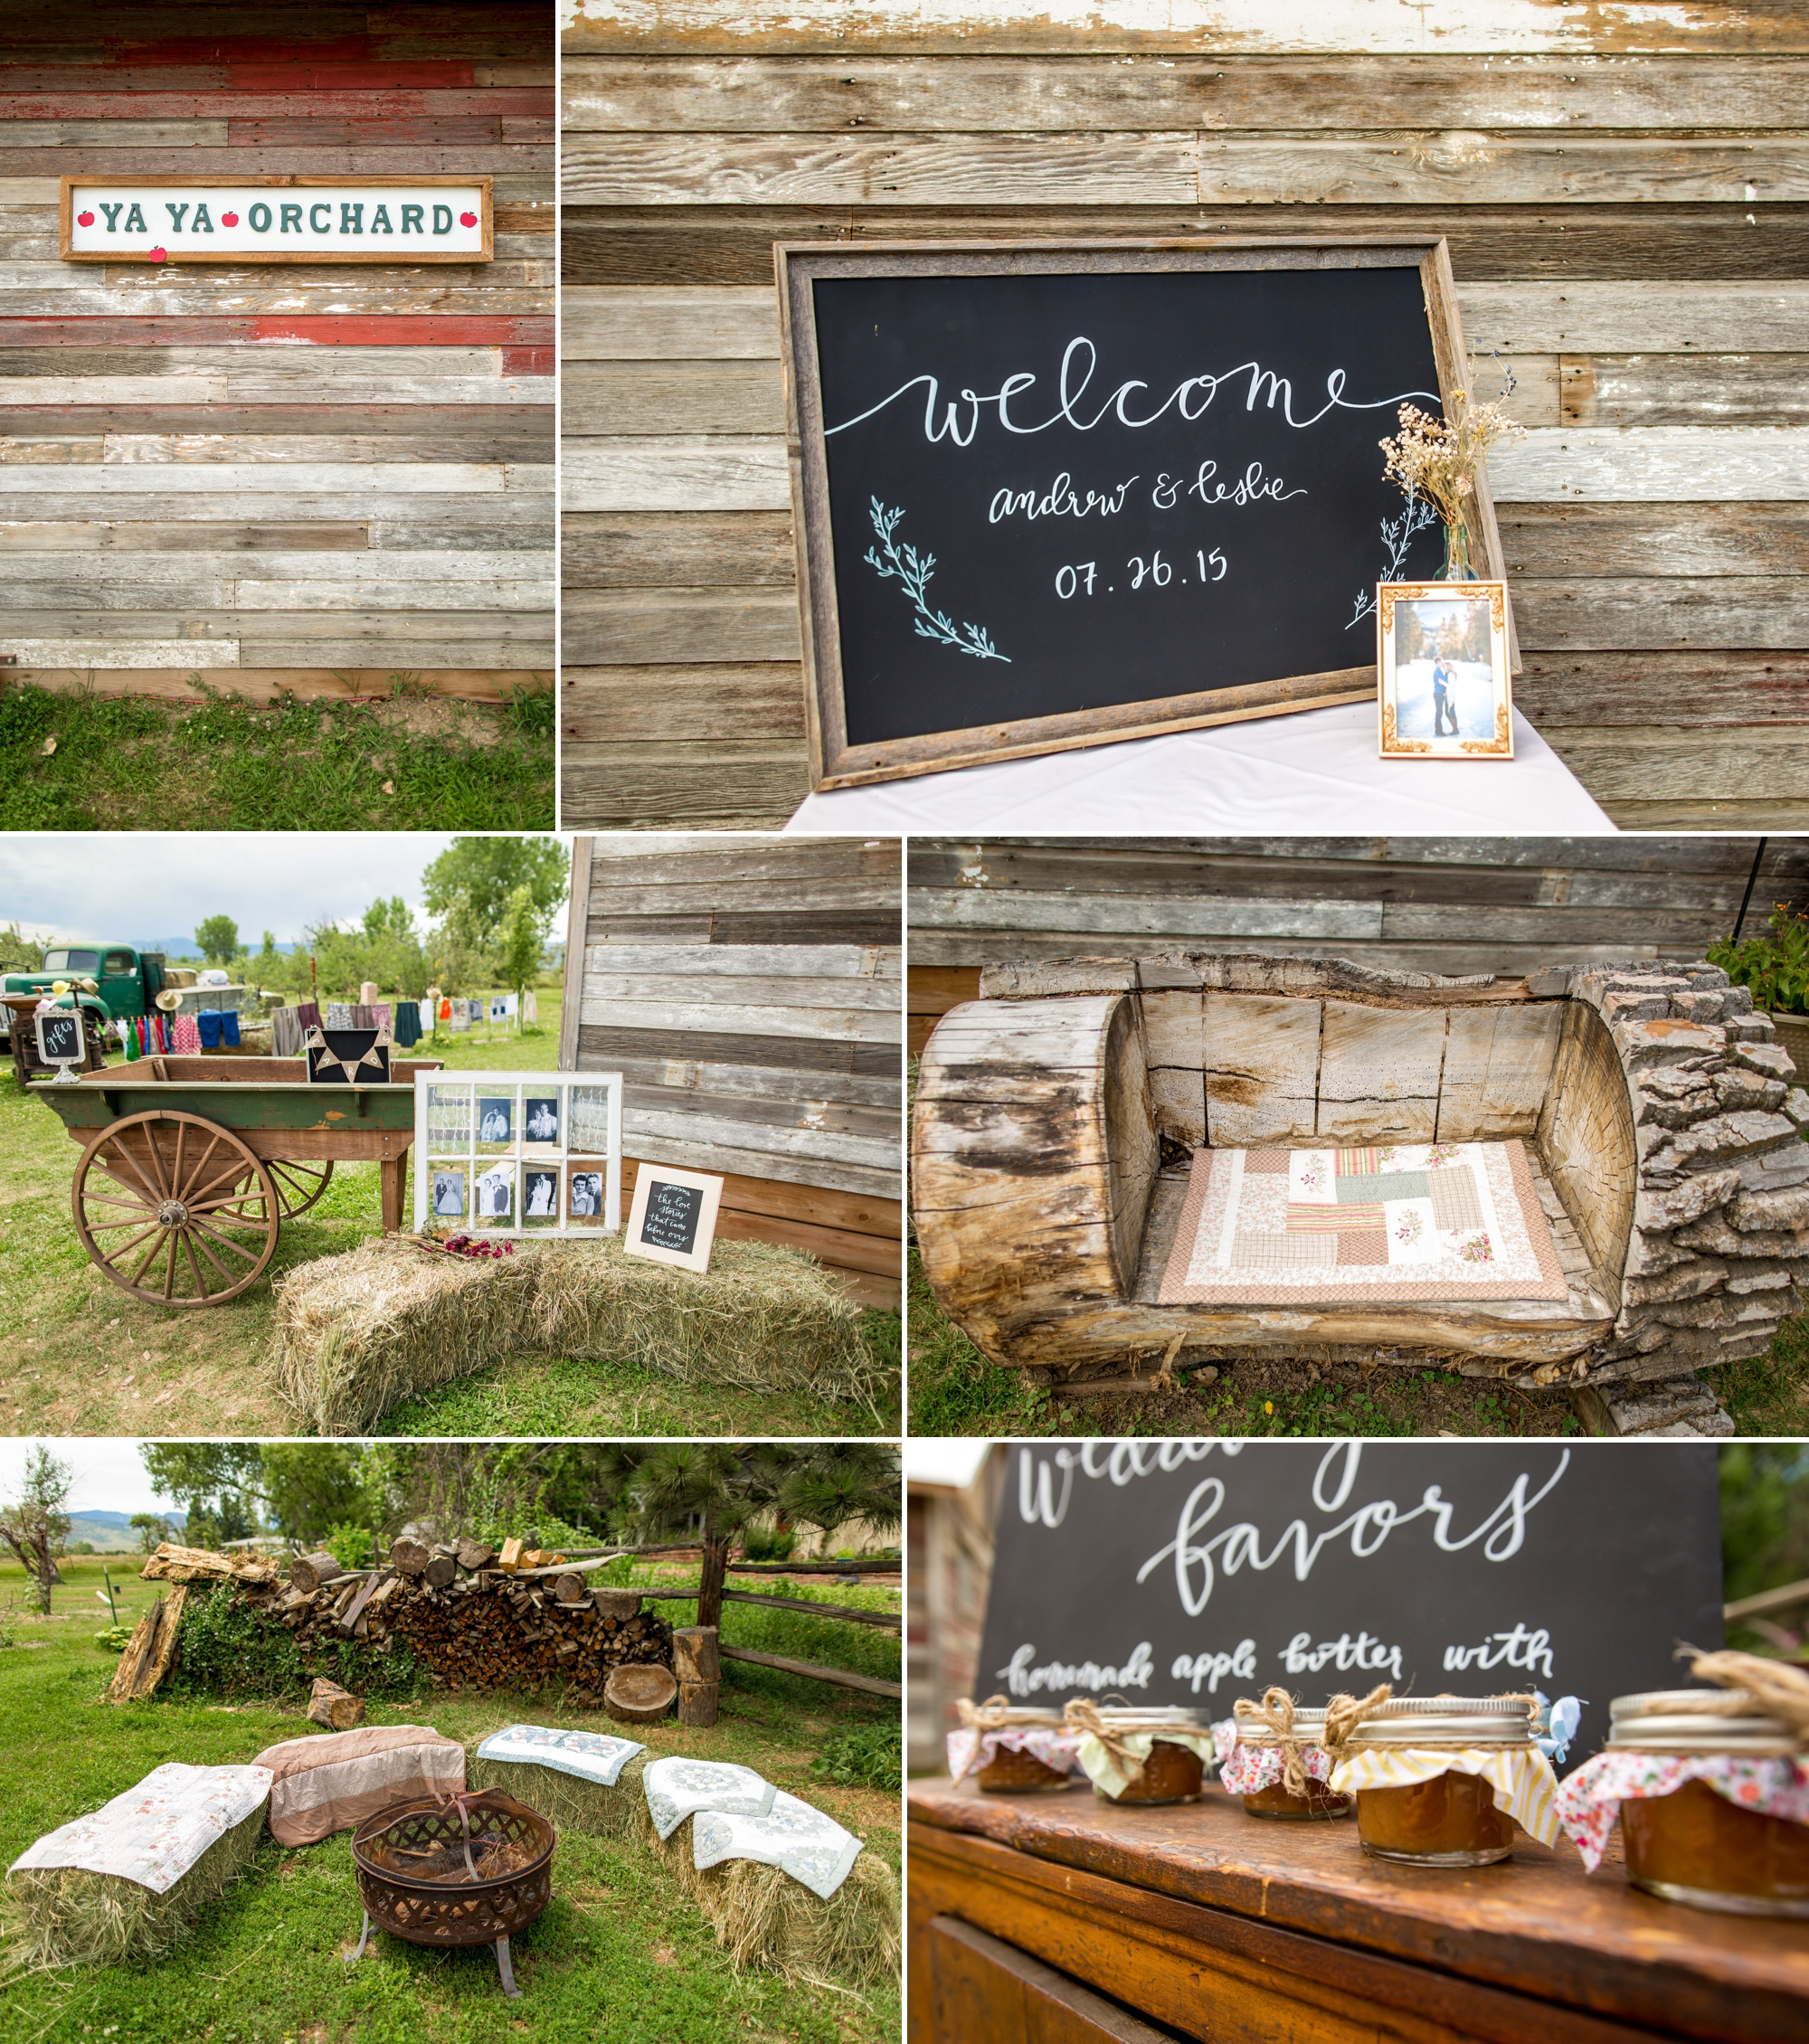 Ya Ya Farm & Orchard - Chic details, complete with hay bails andapple butter!